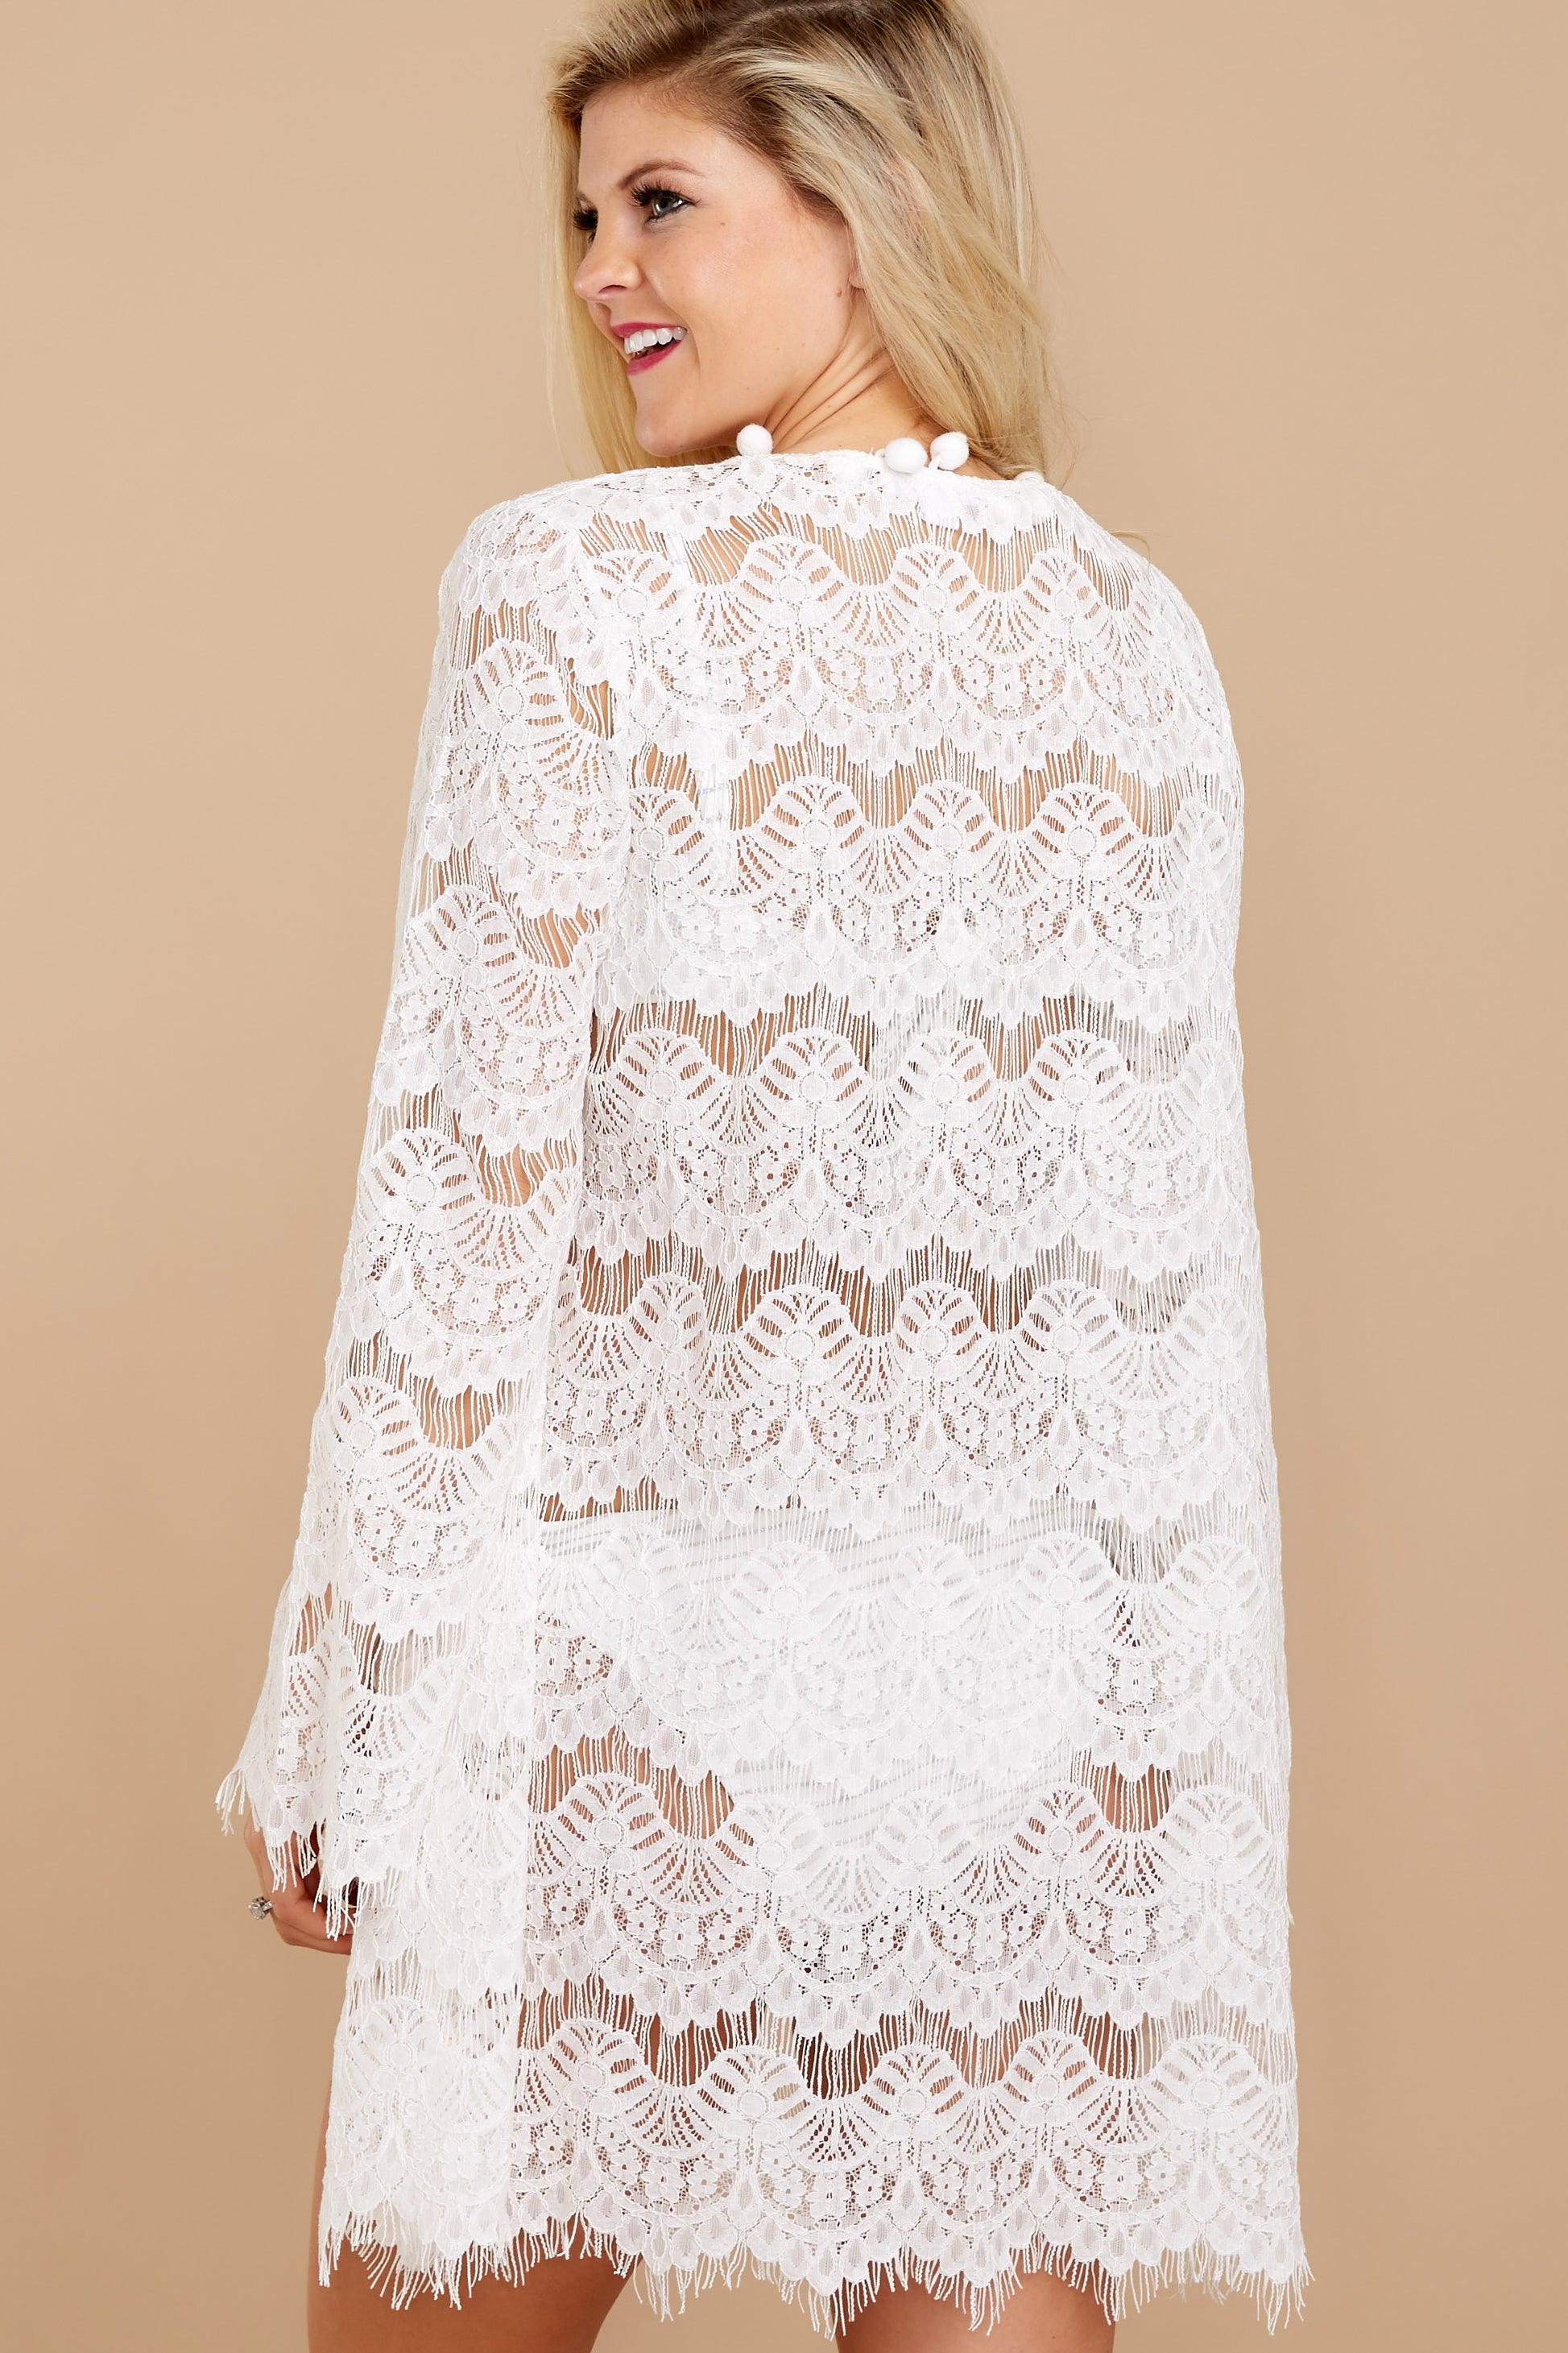 7 Got You Covered White Lace Cover Up at reddressboutique.com